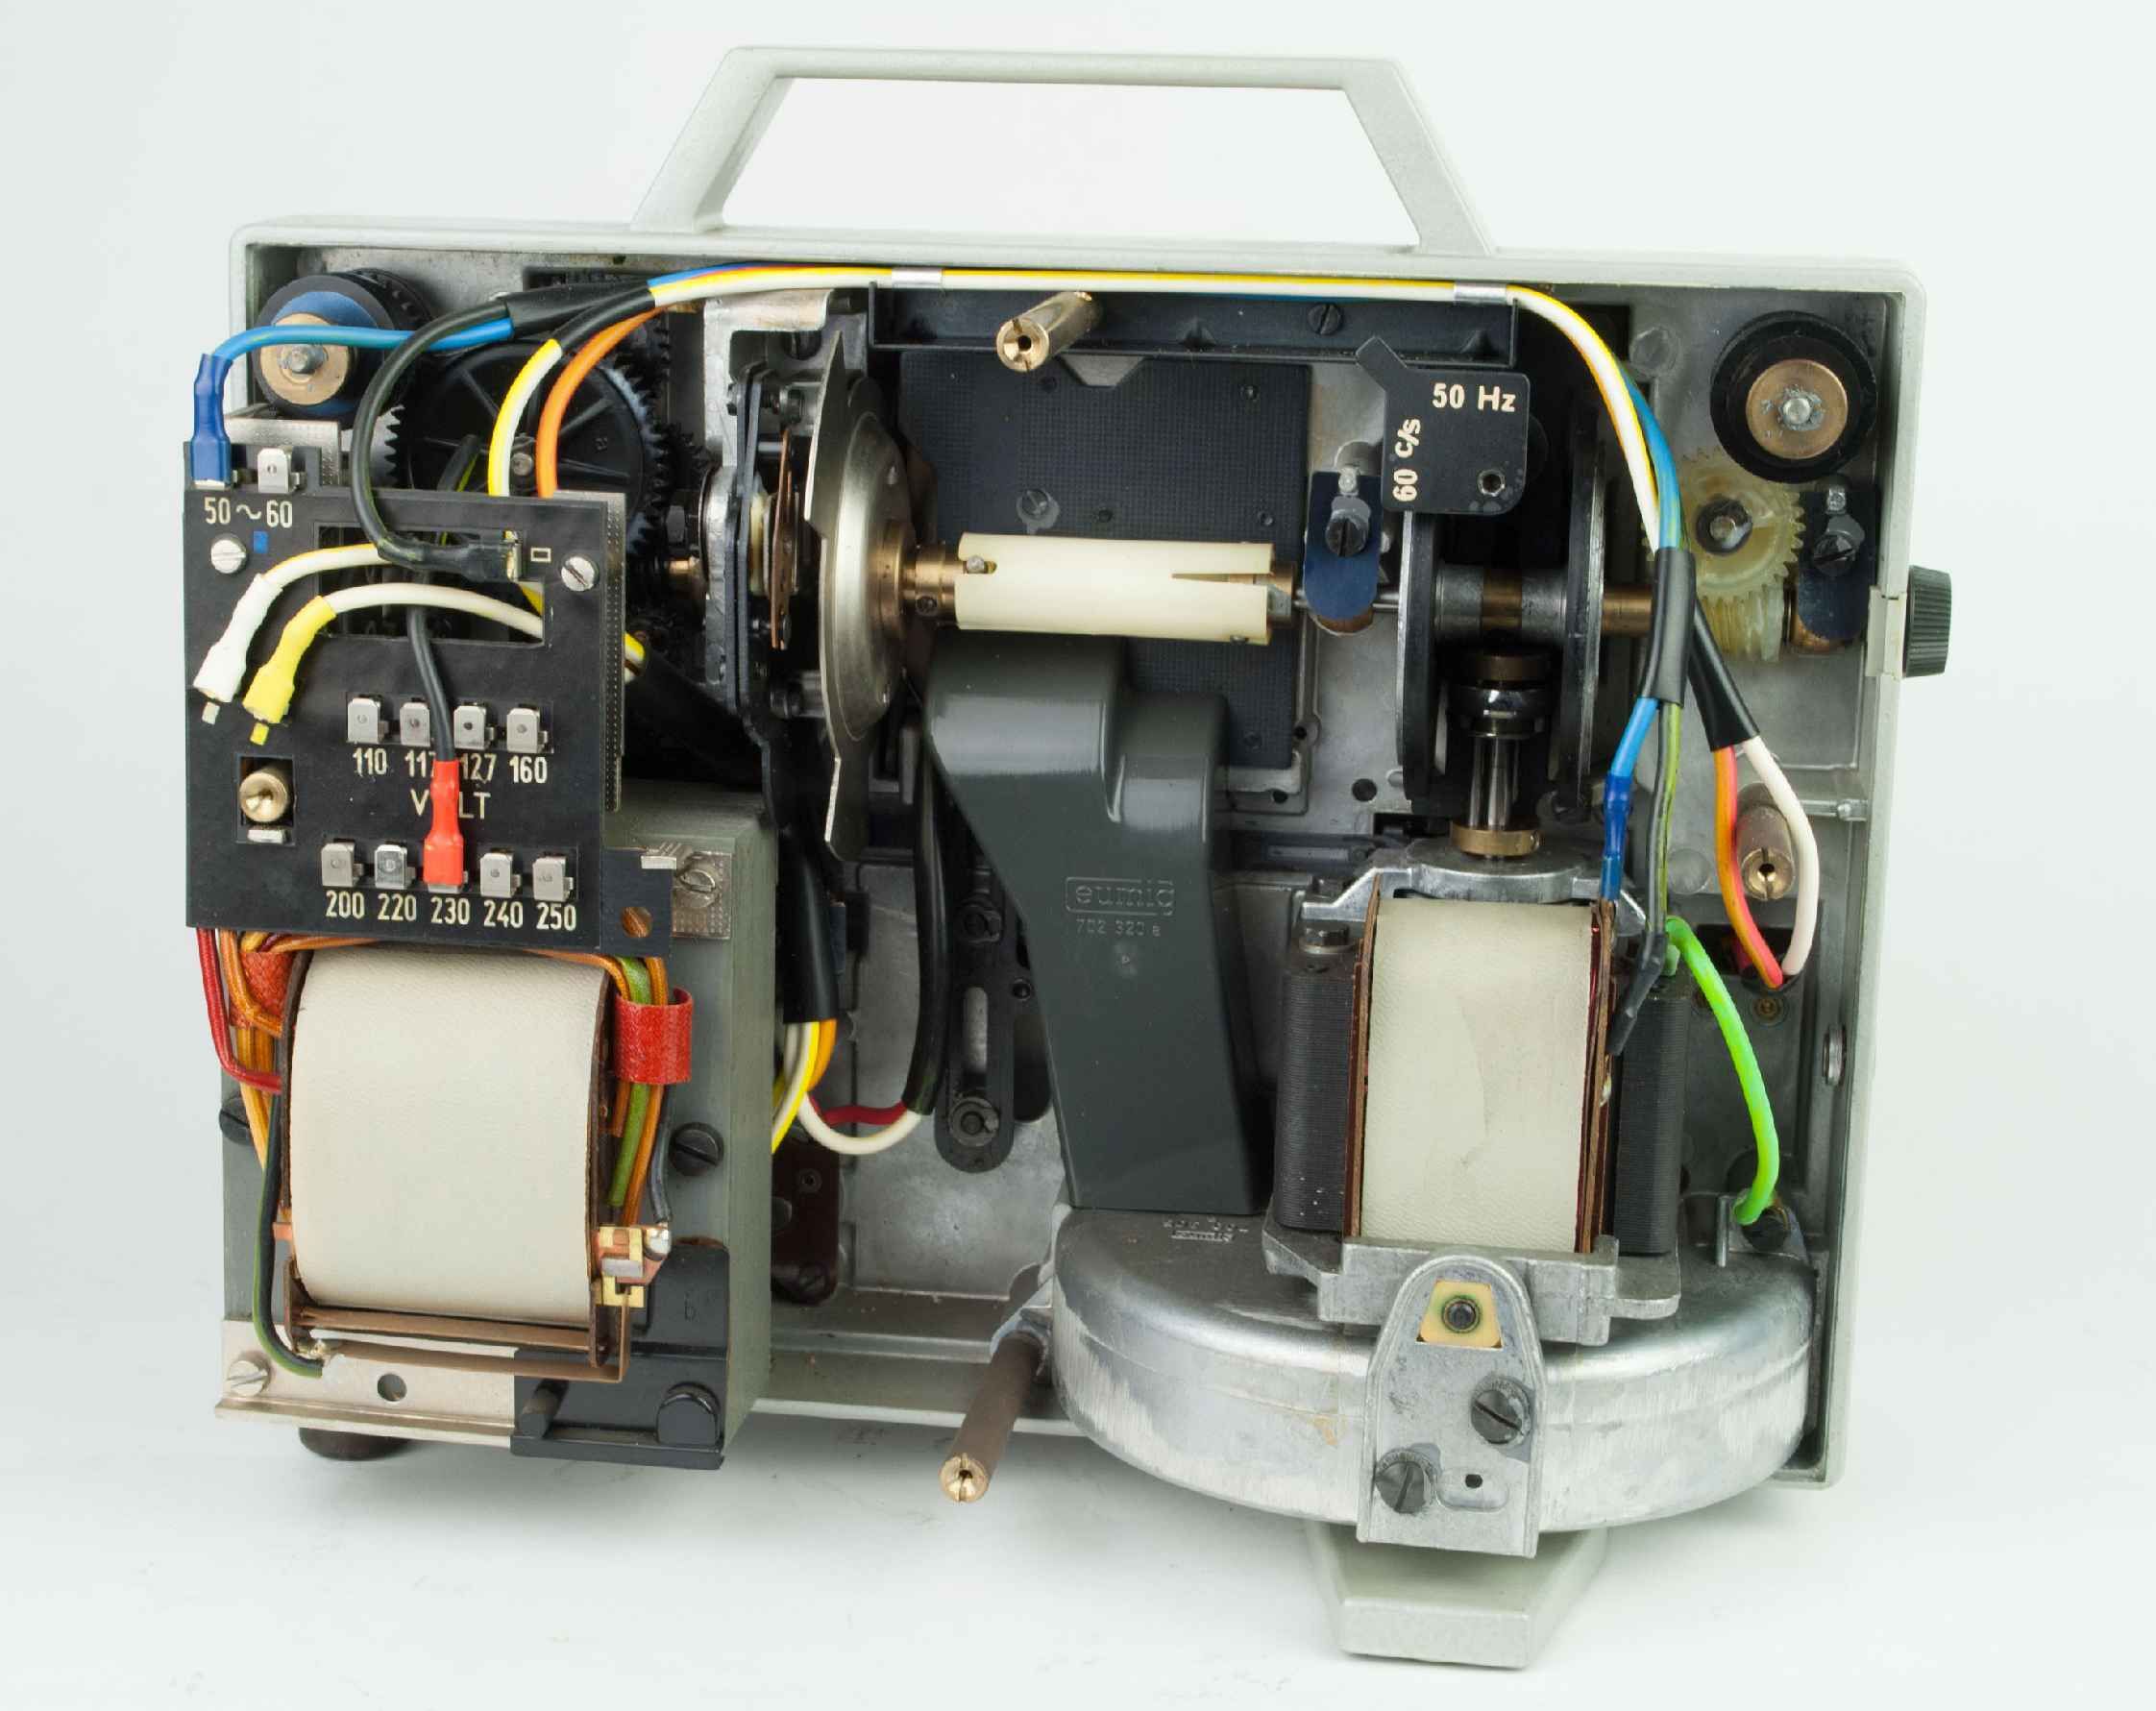 Eumig mark 610 d, film projectors spare parts and information.